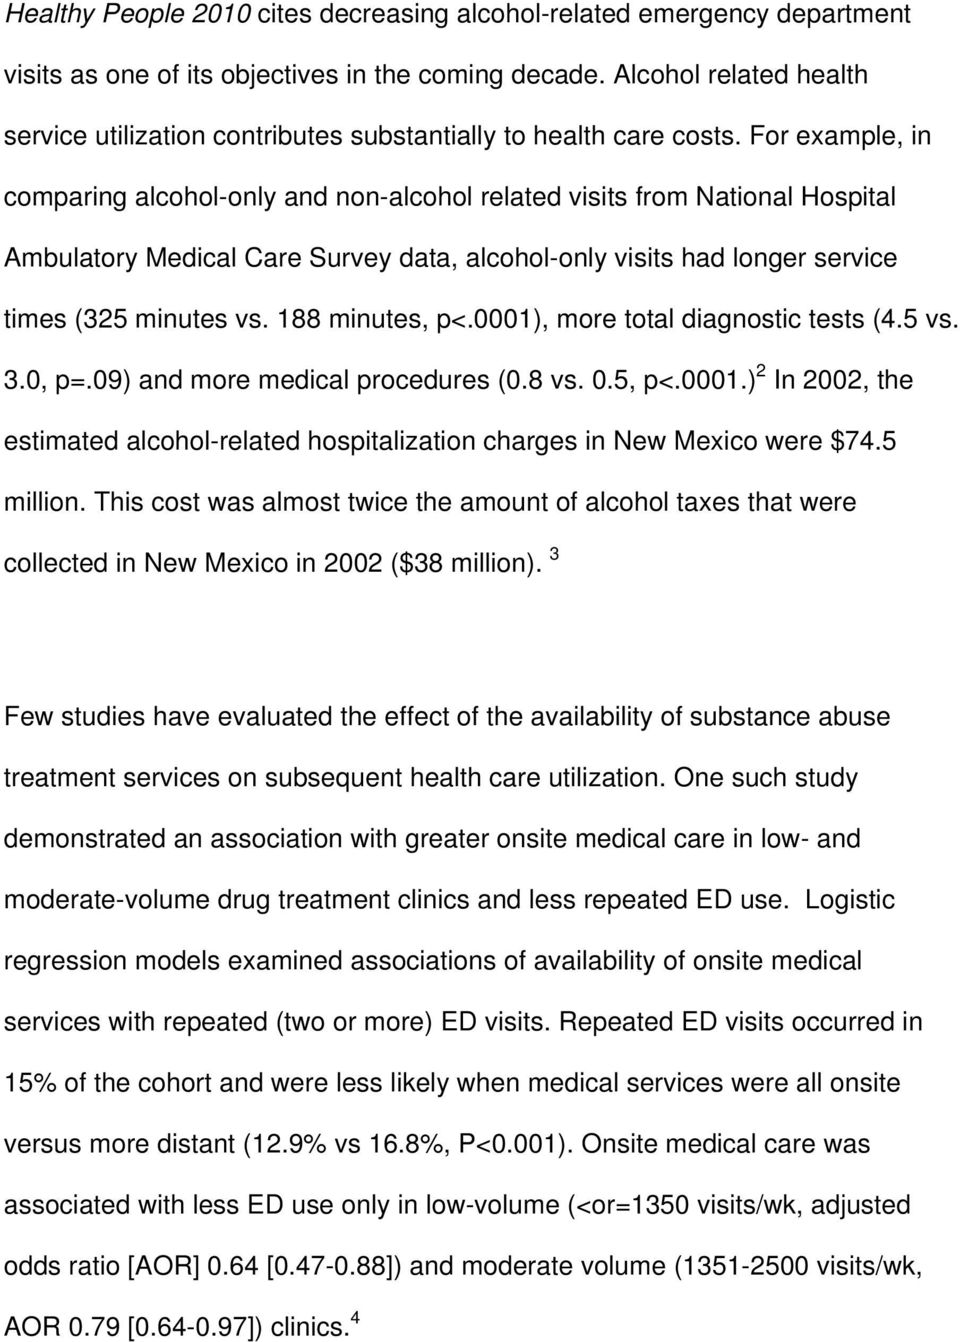 For example, in comparing alcohol-only and non-alcohol related visits from National Hospital Ambulatory Medical Care Survey data, alcohol-only visits had longer service times (325 minutes vs.